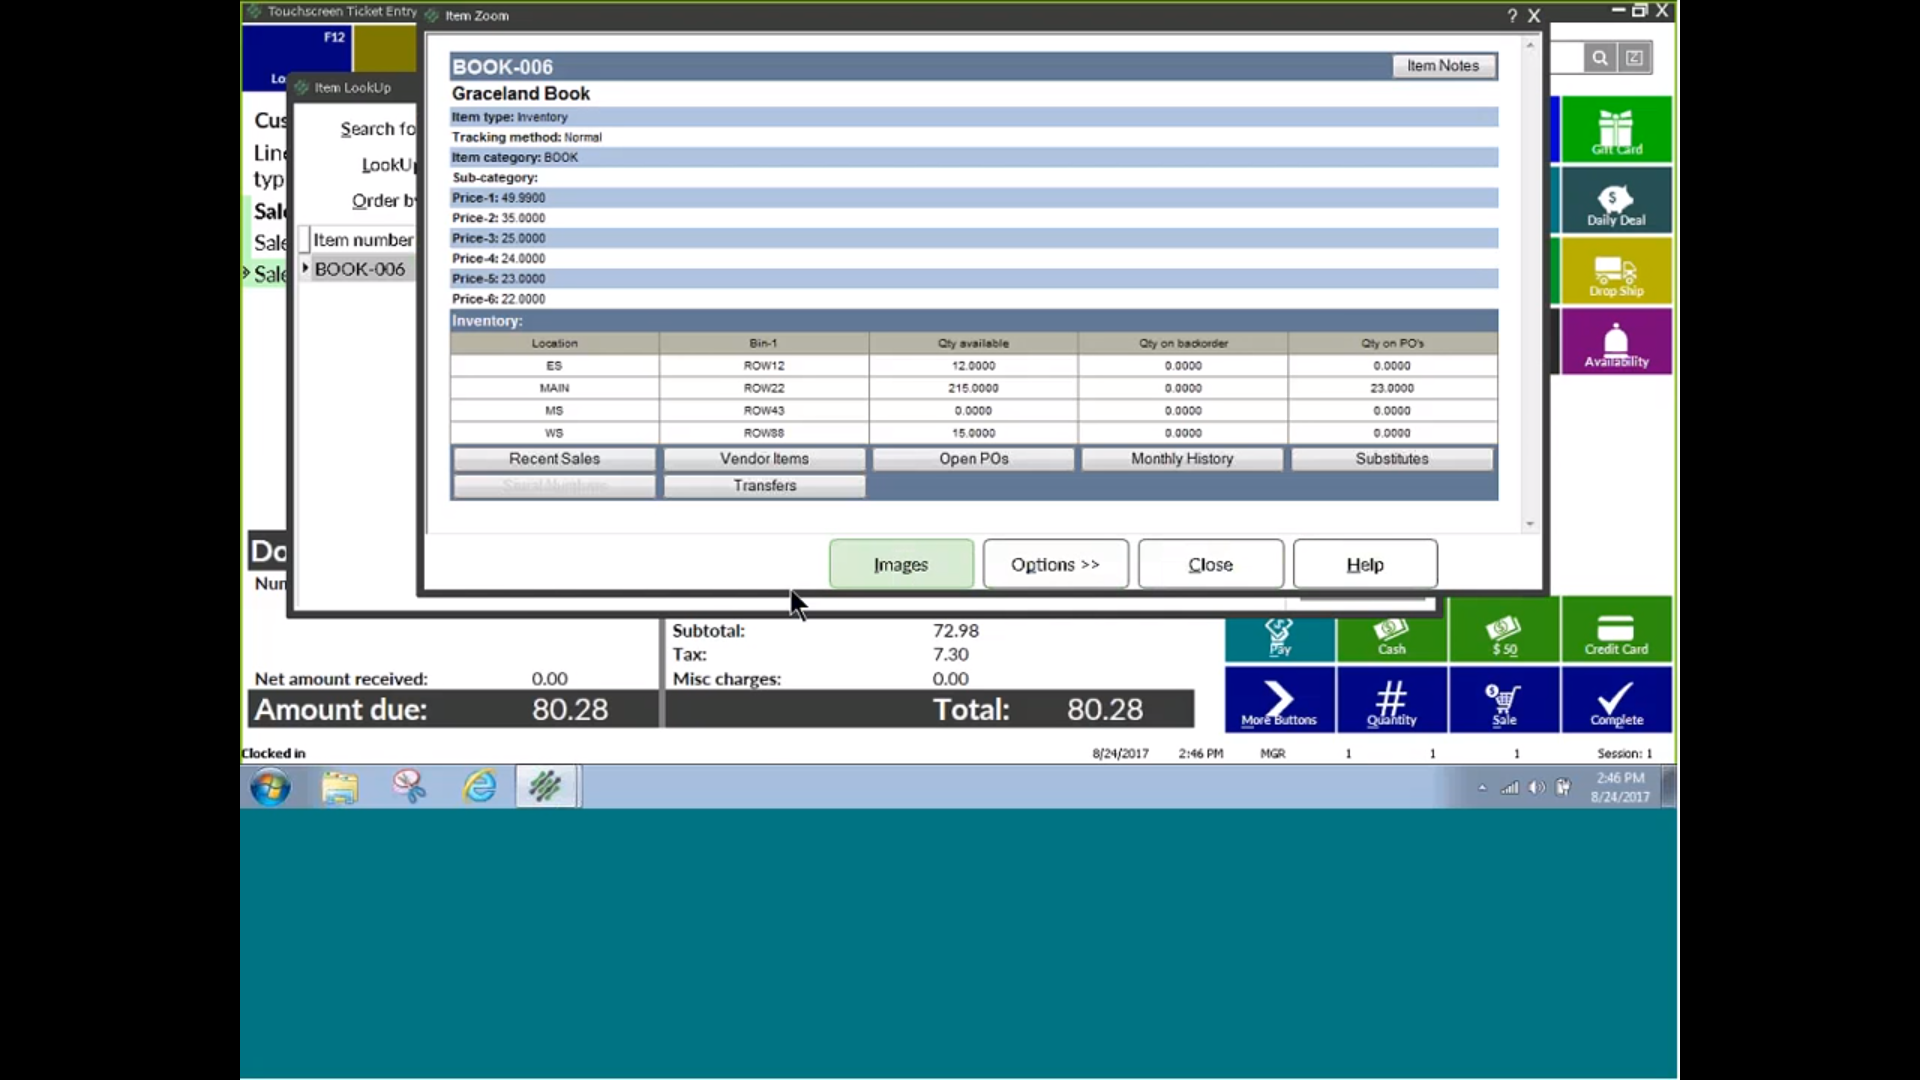 NCR Counterpoint Software - NCR Counterpoint inventory management